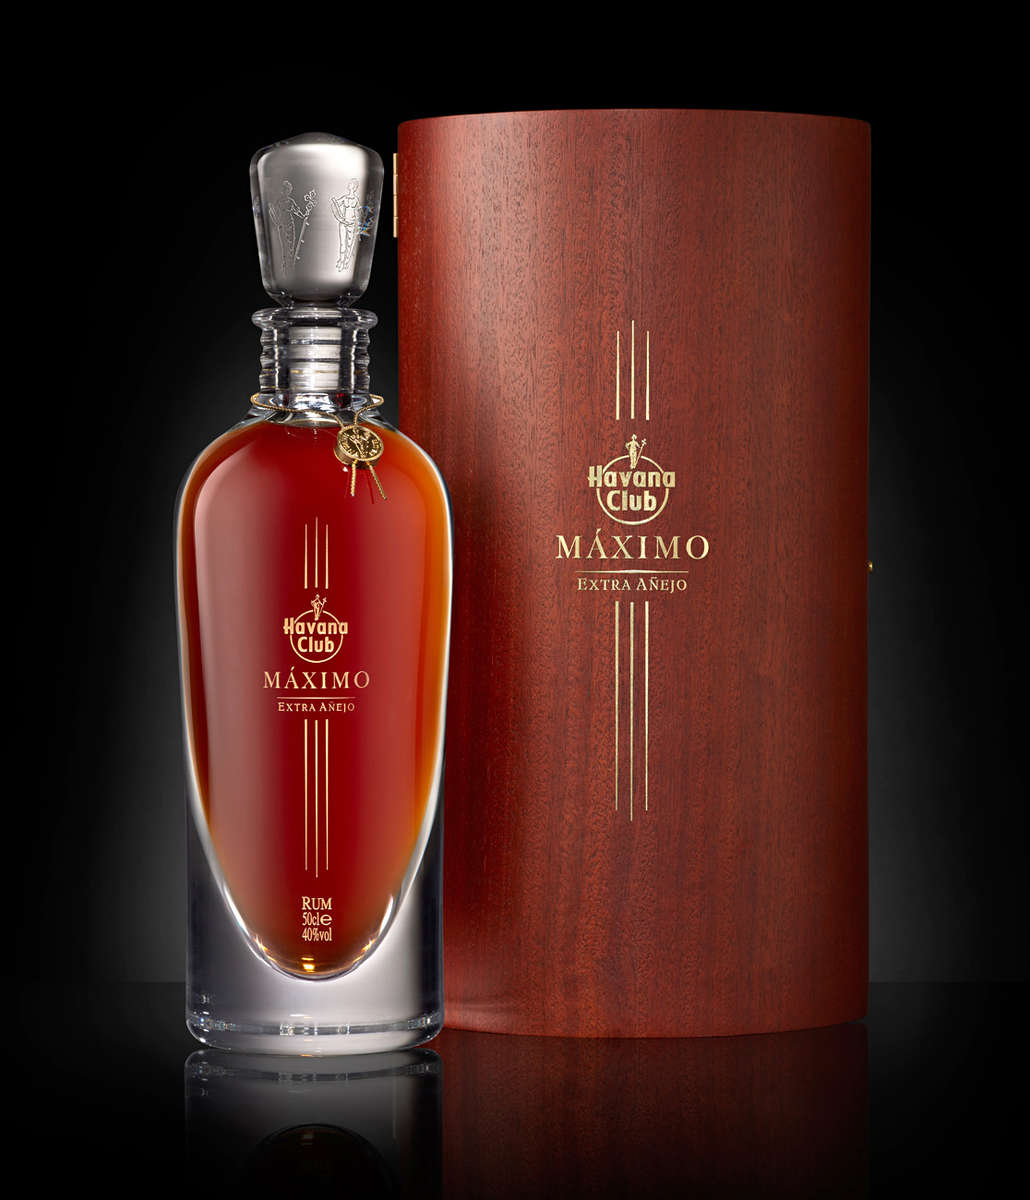 bottle of Havana Club Maximo with case